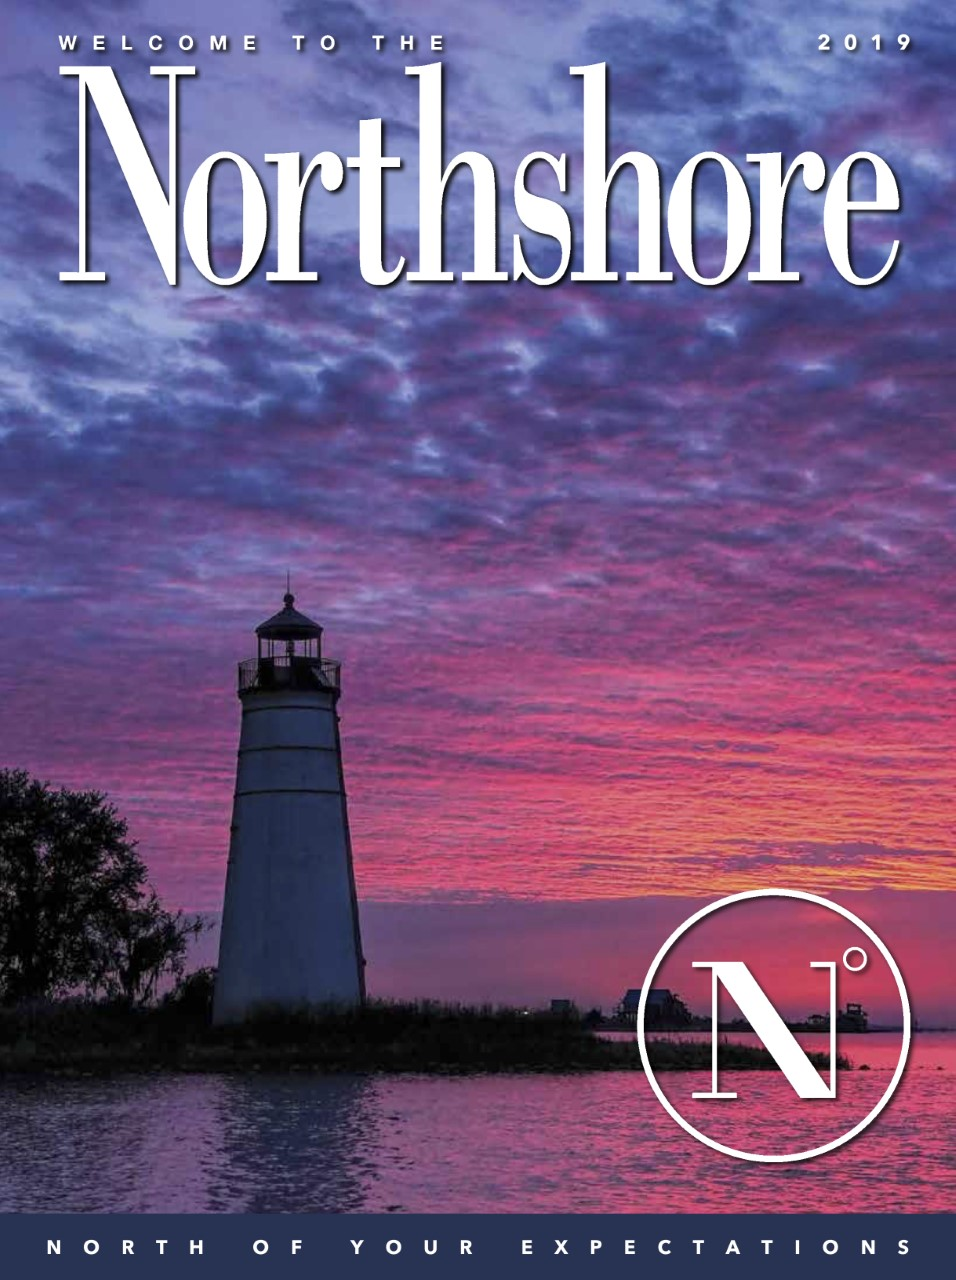 New here? - Check out this Welcome Guide by Inside Northside Magazine. It is chocka-block full of great info!